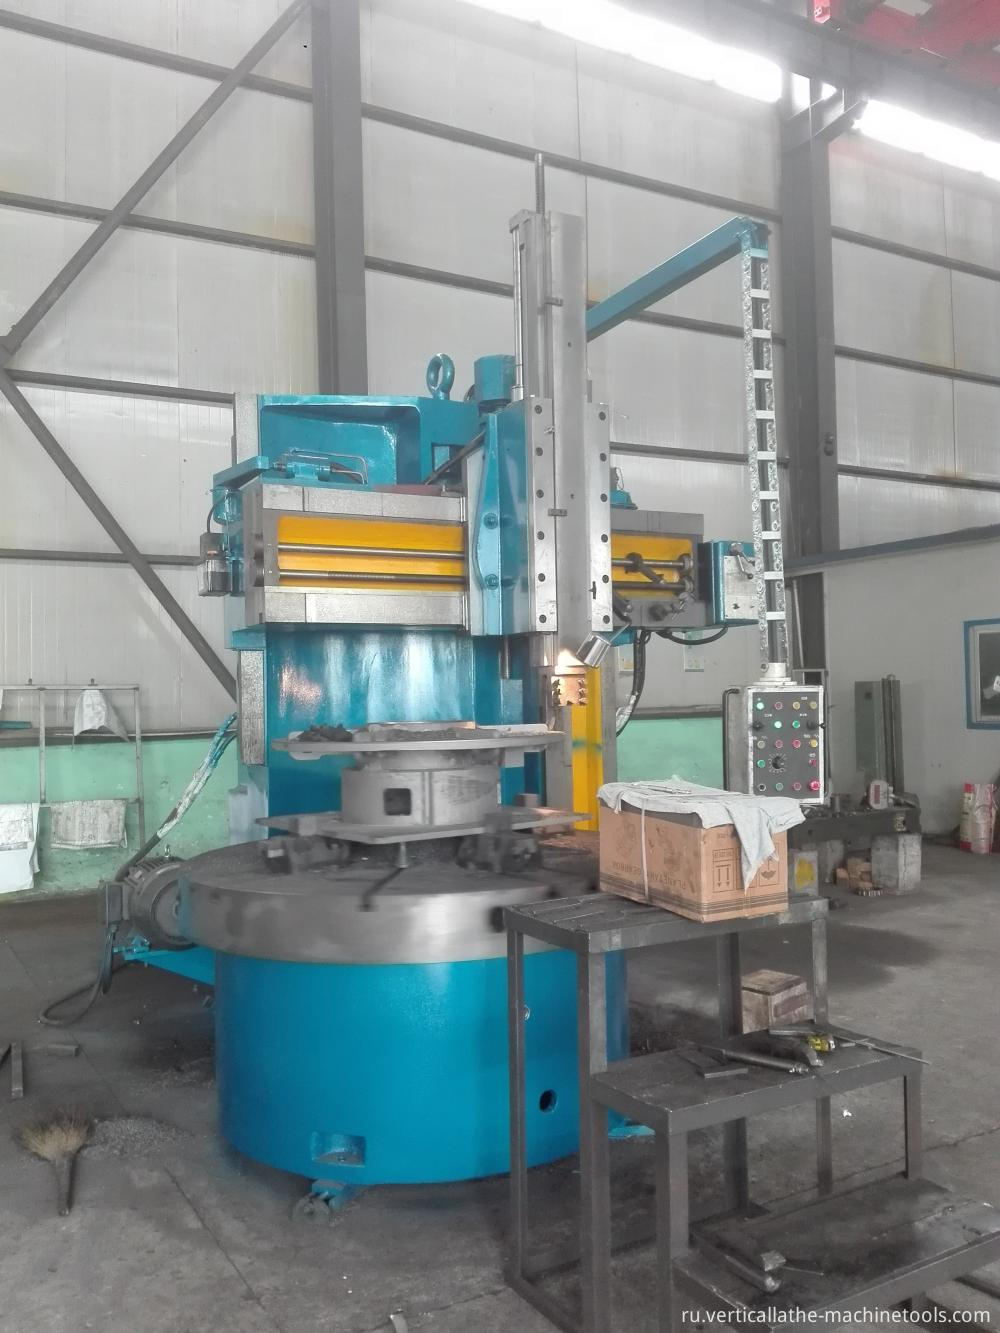 Vertical turning boring machines